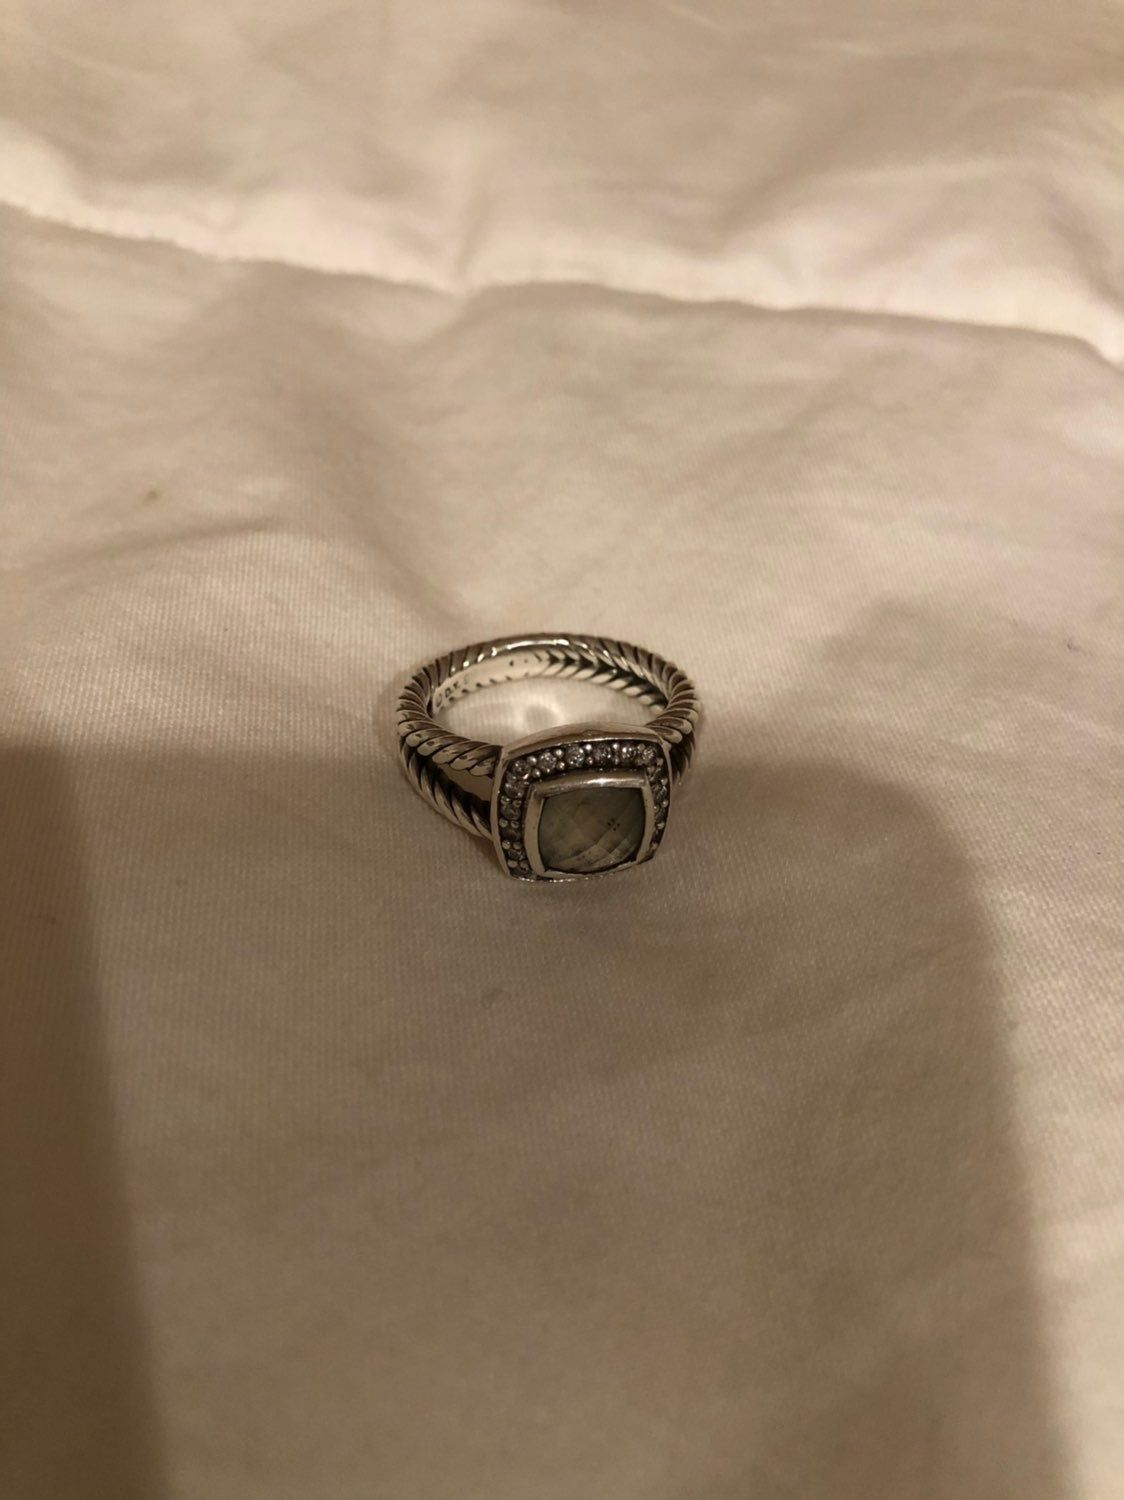 Authentic David Yurman Petite Albion Ring In Parisolite Includes Dust Bag And Copy Of Receipt Resized To Size 6 David Yurman Ring Yurman Ring Rings